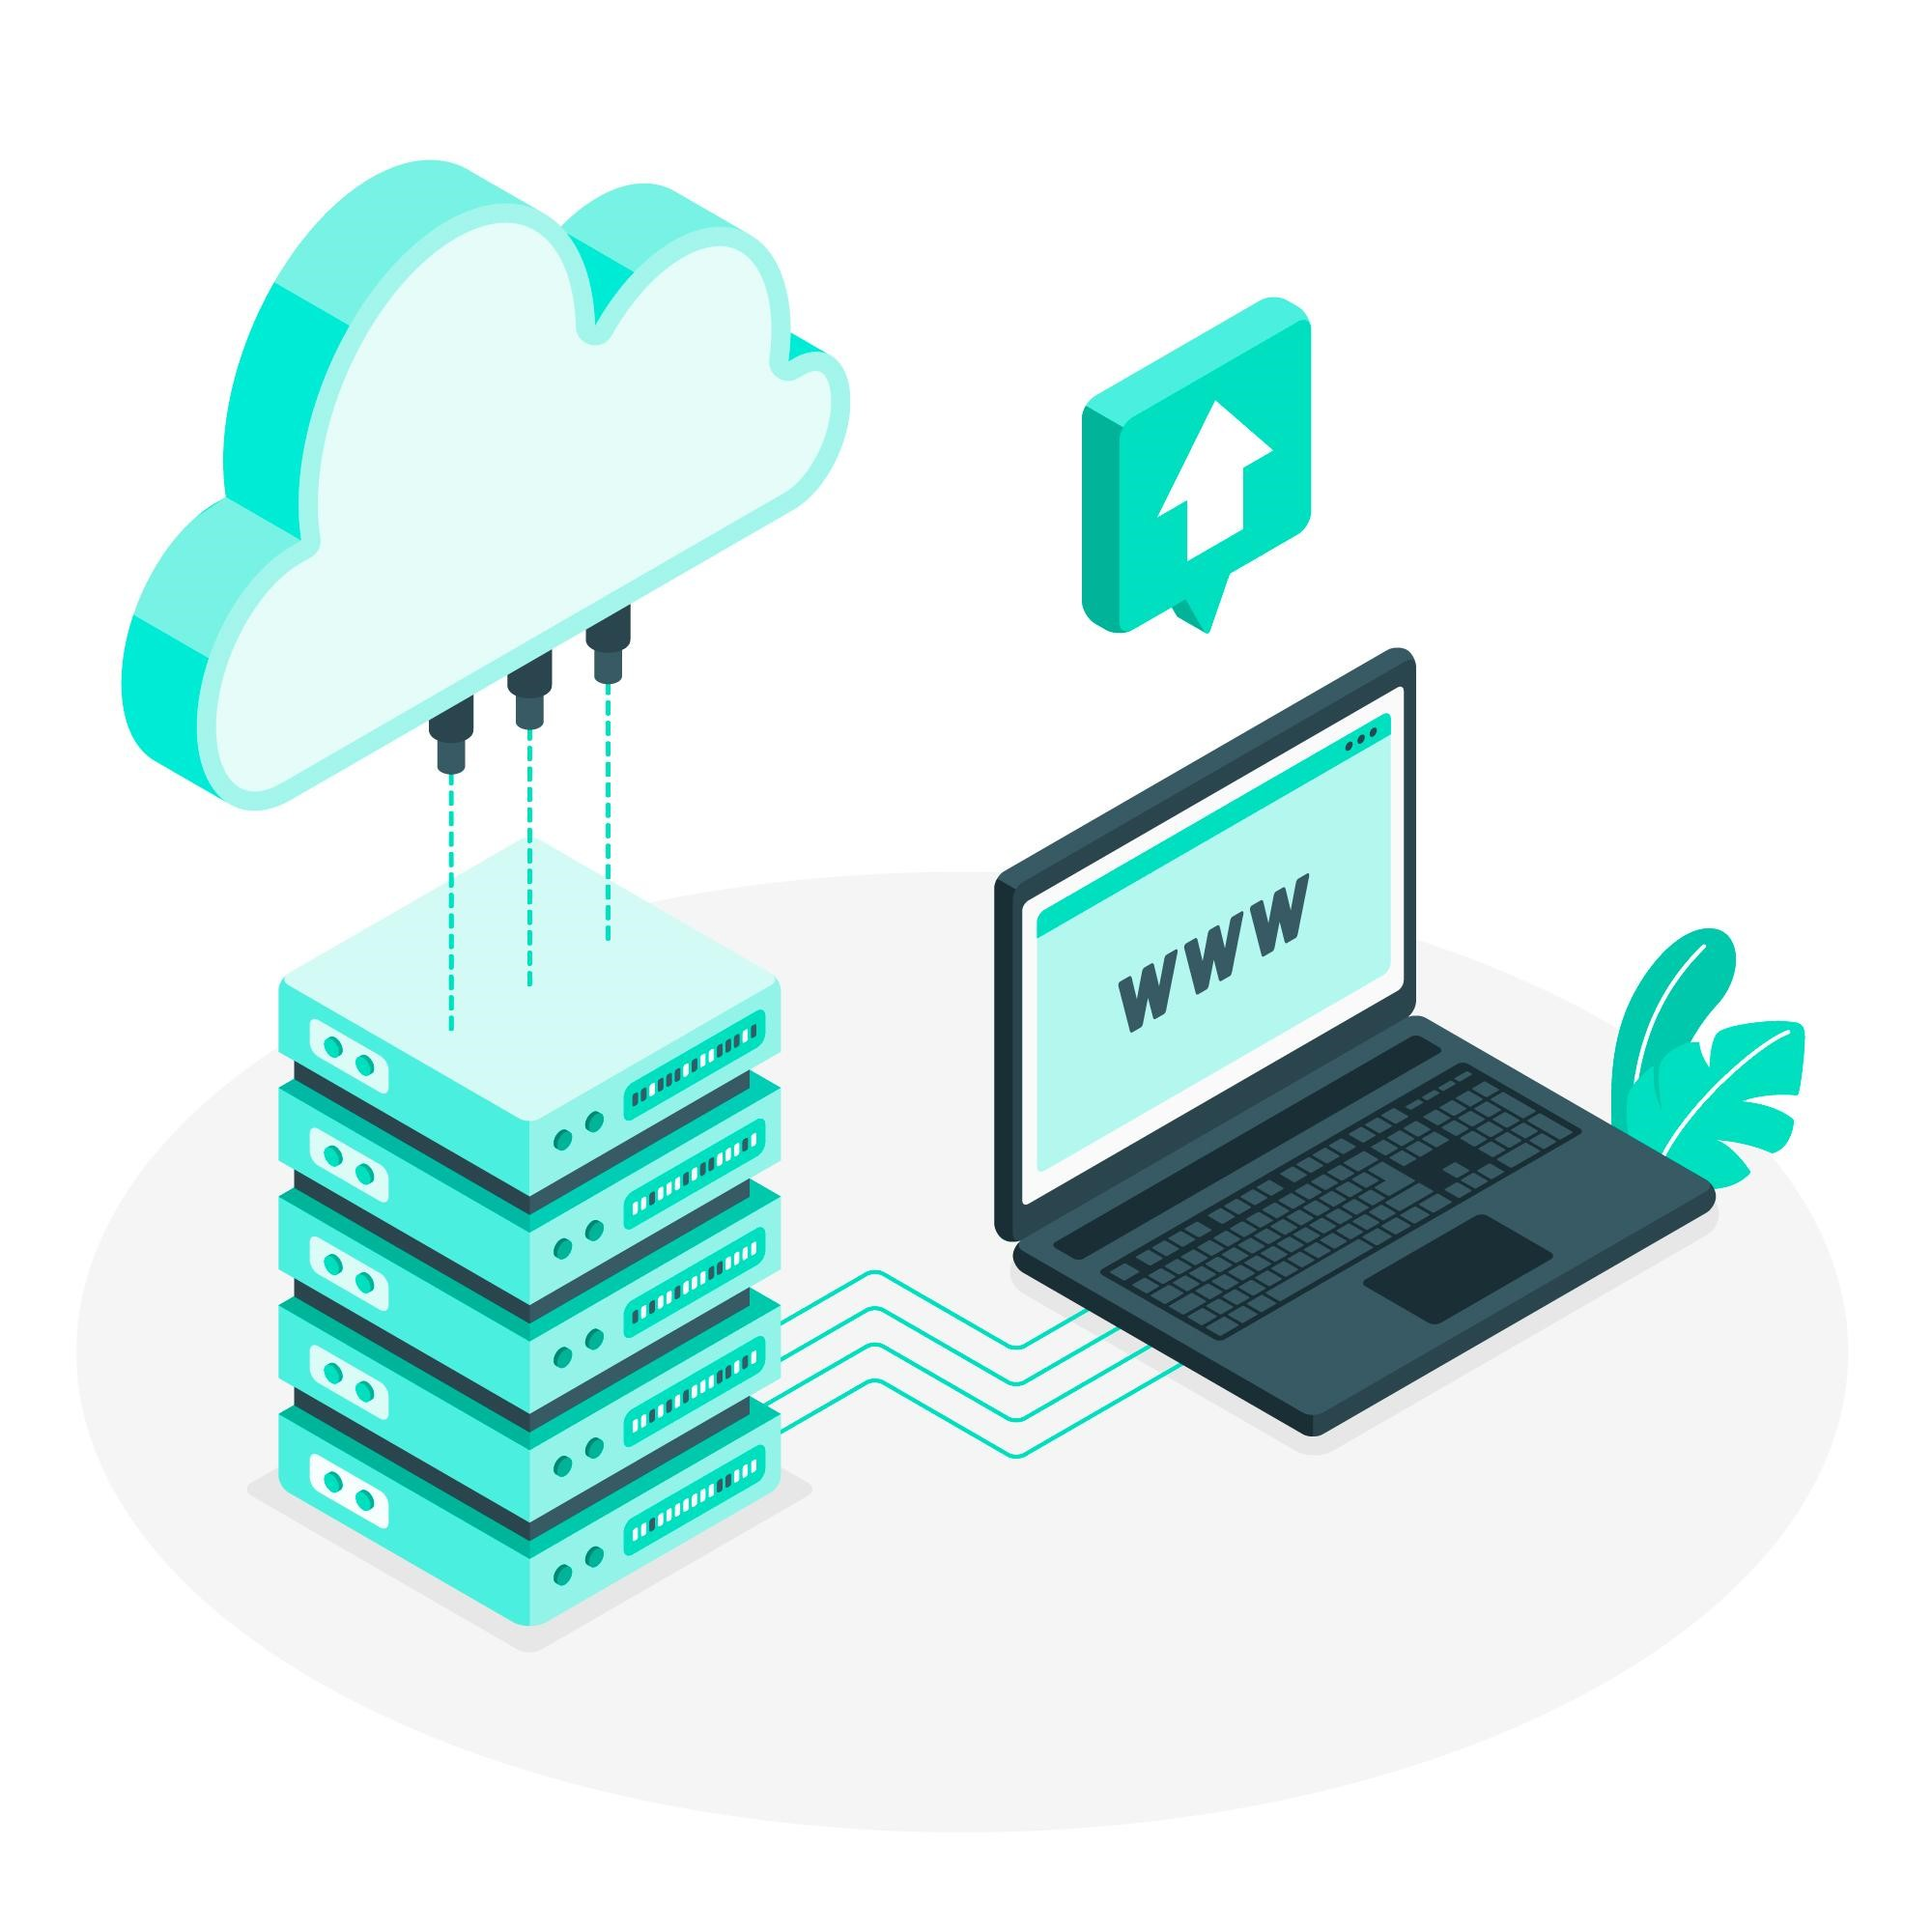 What You Should Know About Choosing the Fastest WordPress Hosting for Your Site